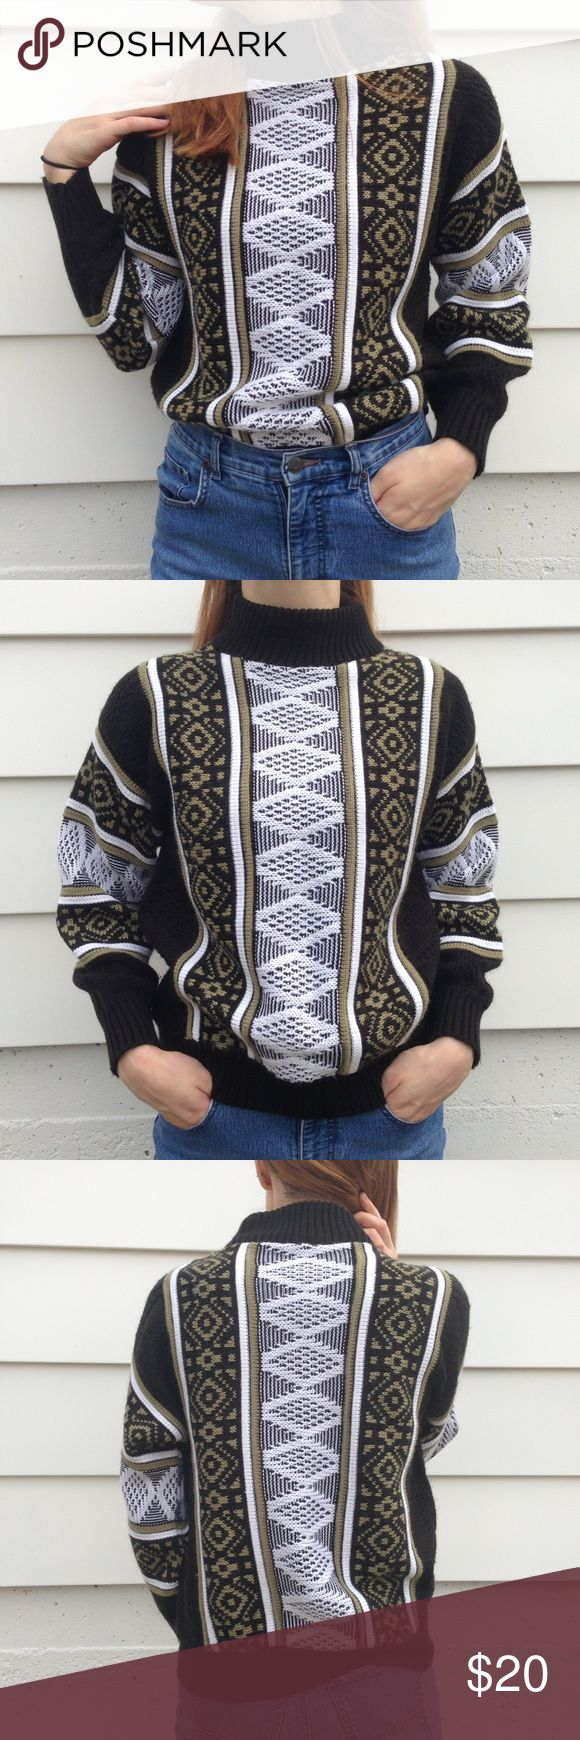 """Killer 70s/80s Argyle Cosby Grandpa Sweater This is a KILLER Cosby esc argyle sweater🔥 Model Measurements:  Height: 5'7 Bust: 33"""" Waist: 26""""  Garment Measurements: Labeled size: Not Labeled  Armpit to Armpit: 20"""" Shoulder to Hem: 22""""  Material: Not labeled   Labeled Brand: Lifton Place Time Period: 1980's  Vintage Condition:  Excellent Vintage Sweaters Cowl & Turtlenecks"""